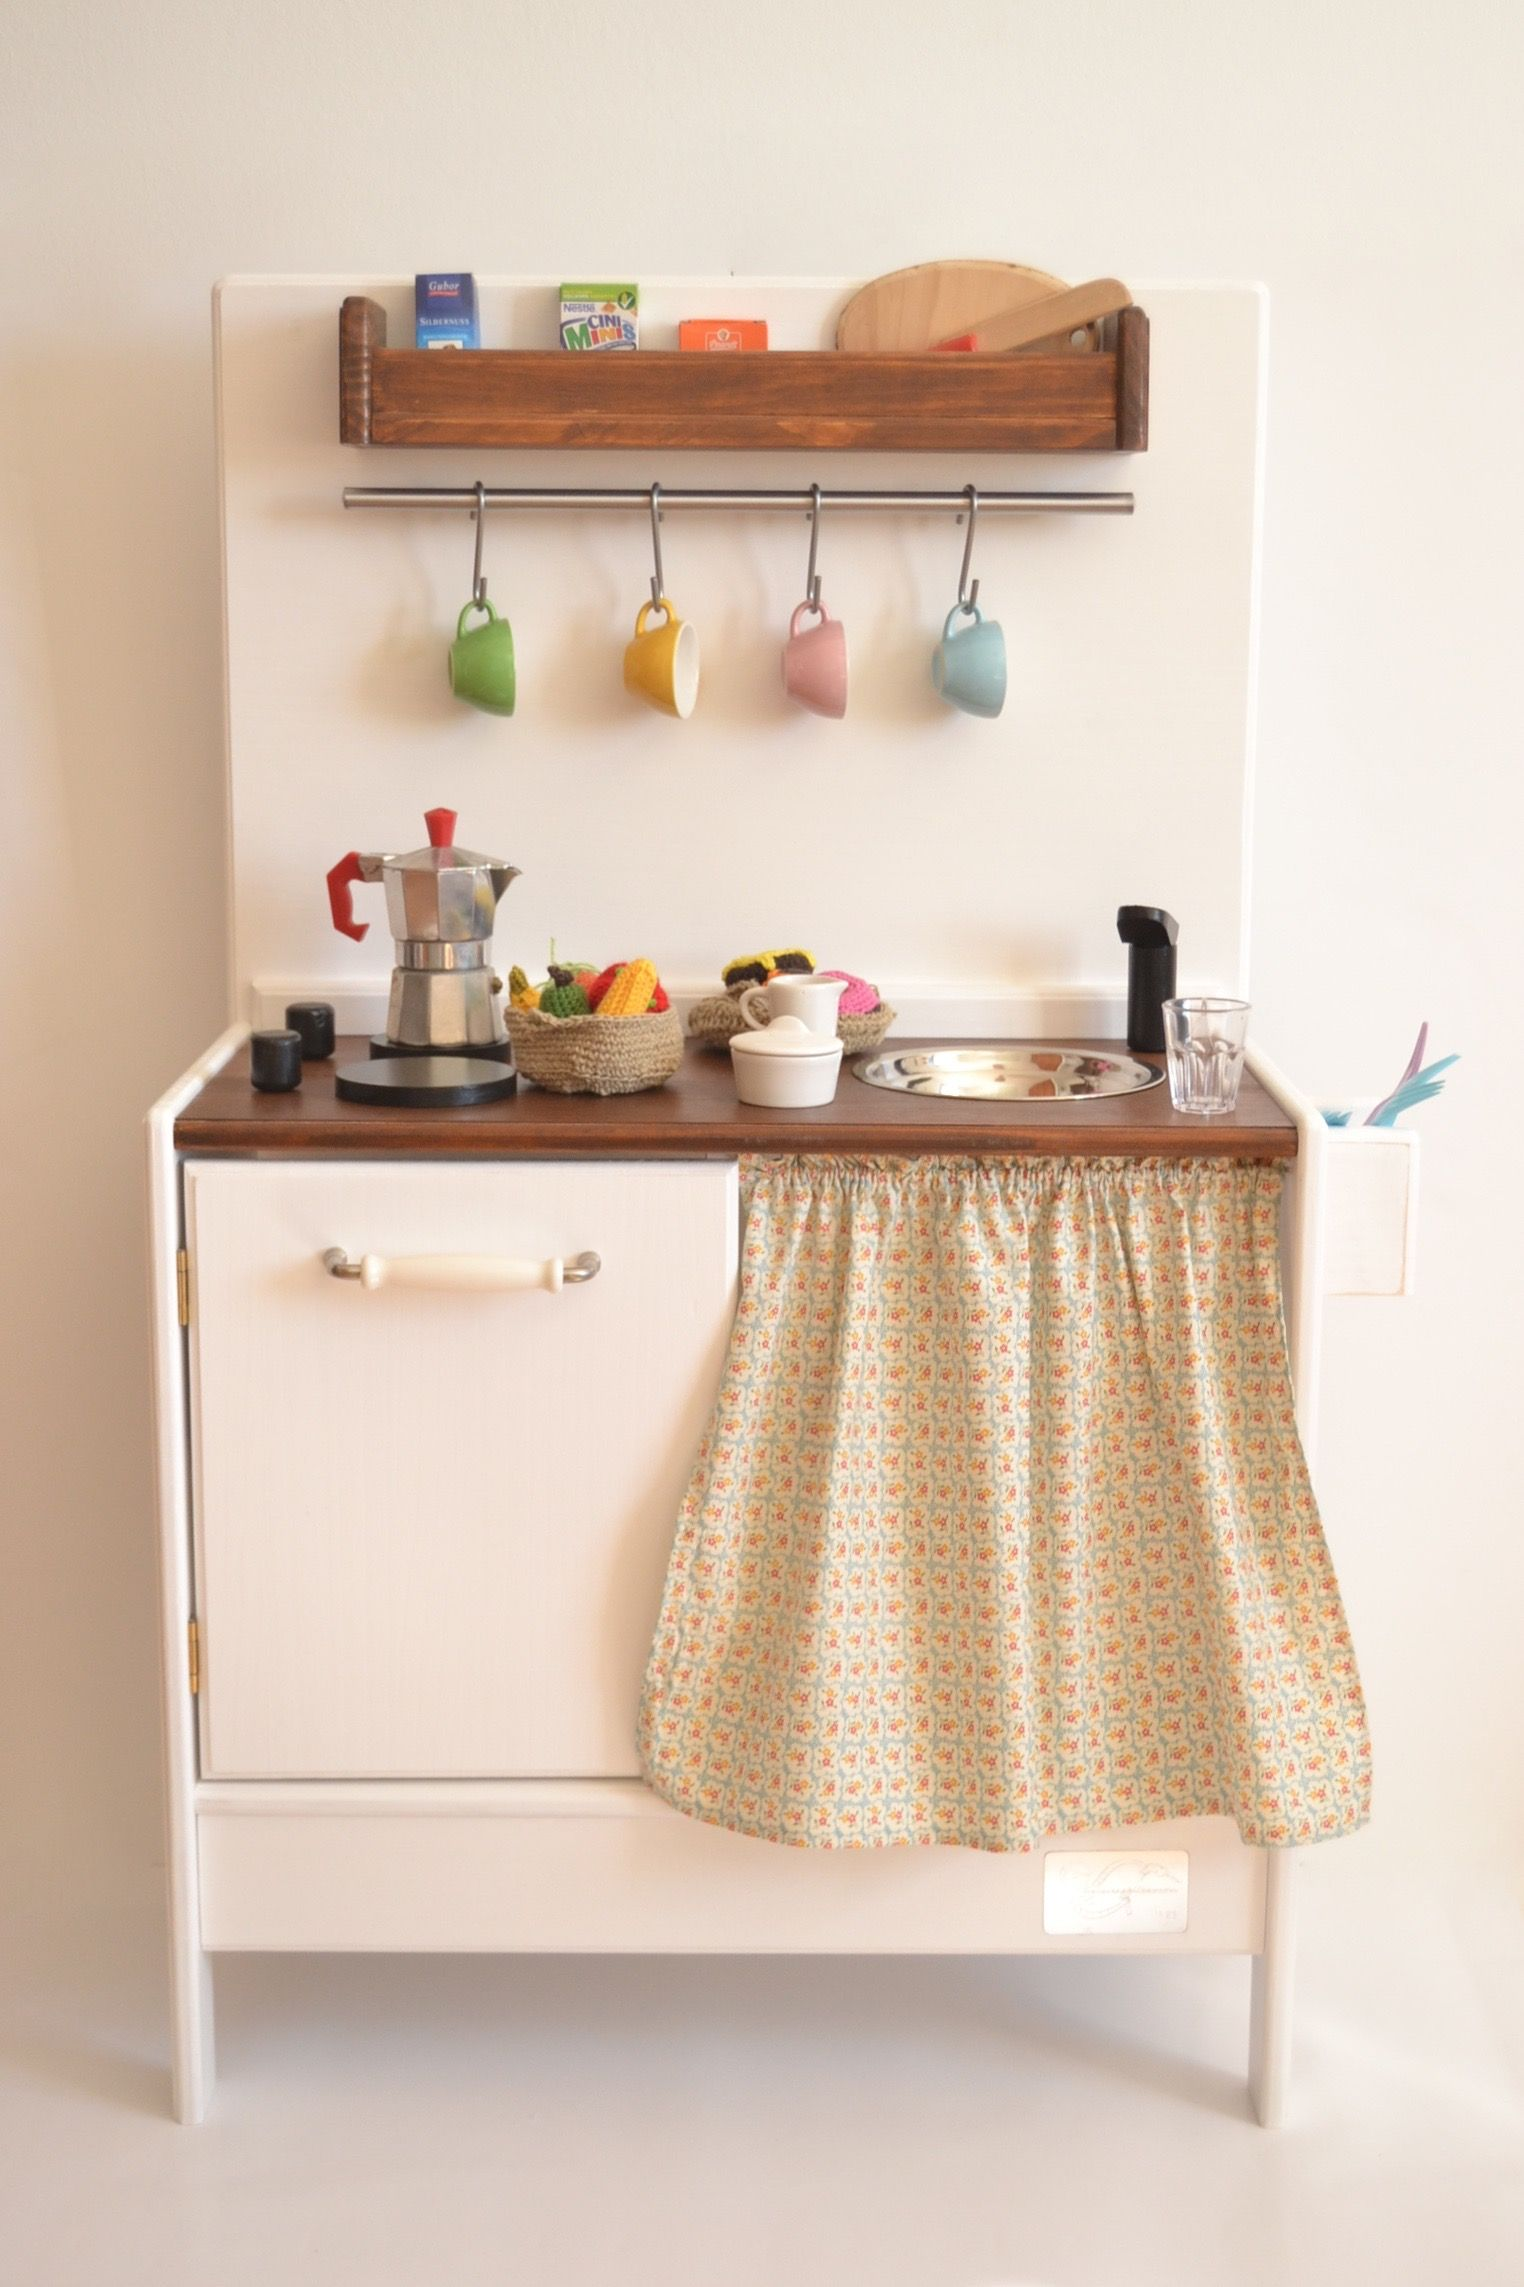 Cocina Juguete Segunda Mano Wooden Toy Kitchen Woodentoy Woodenkitchen